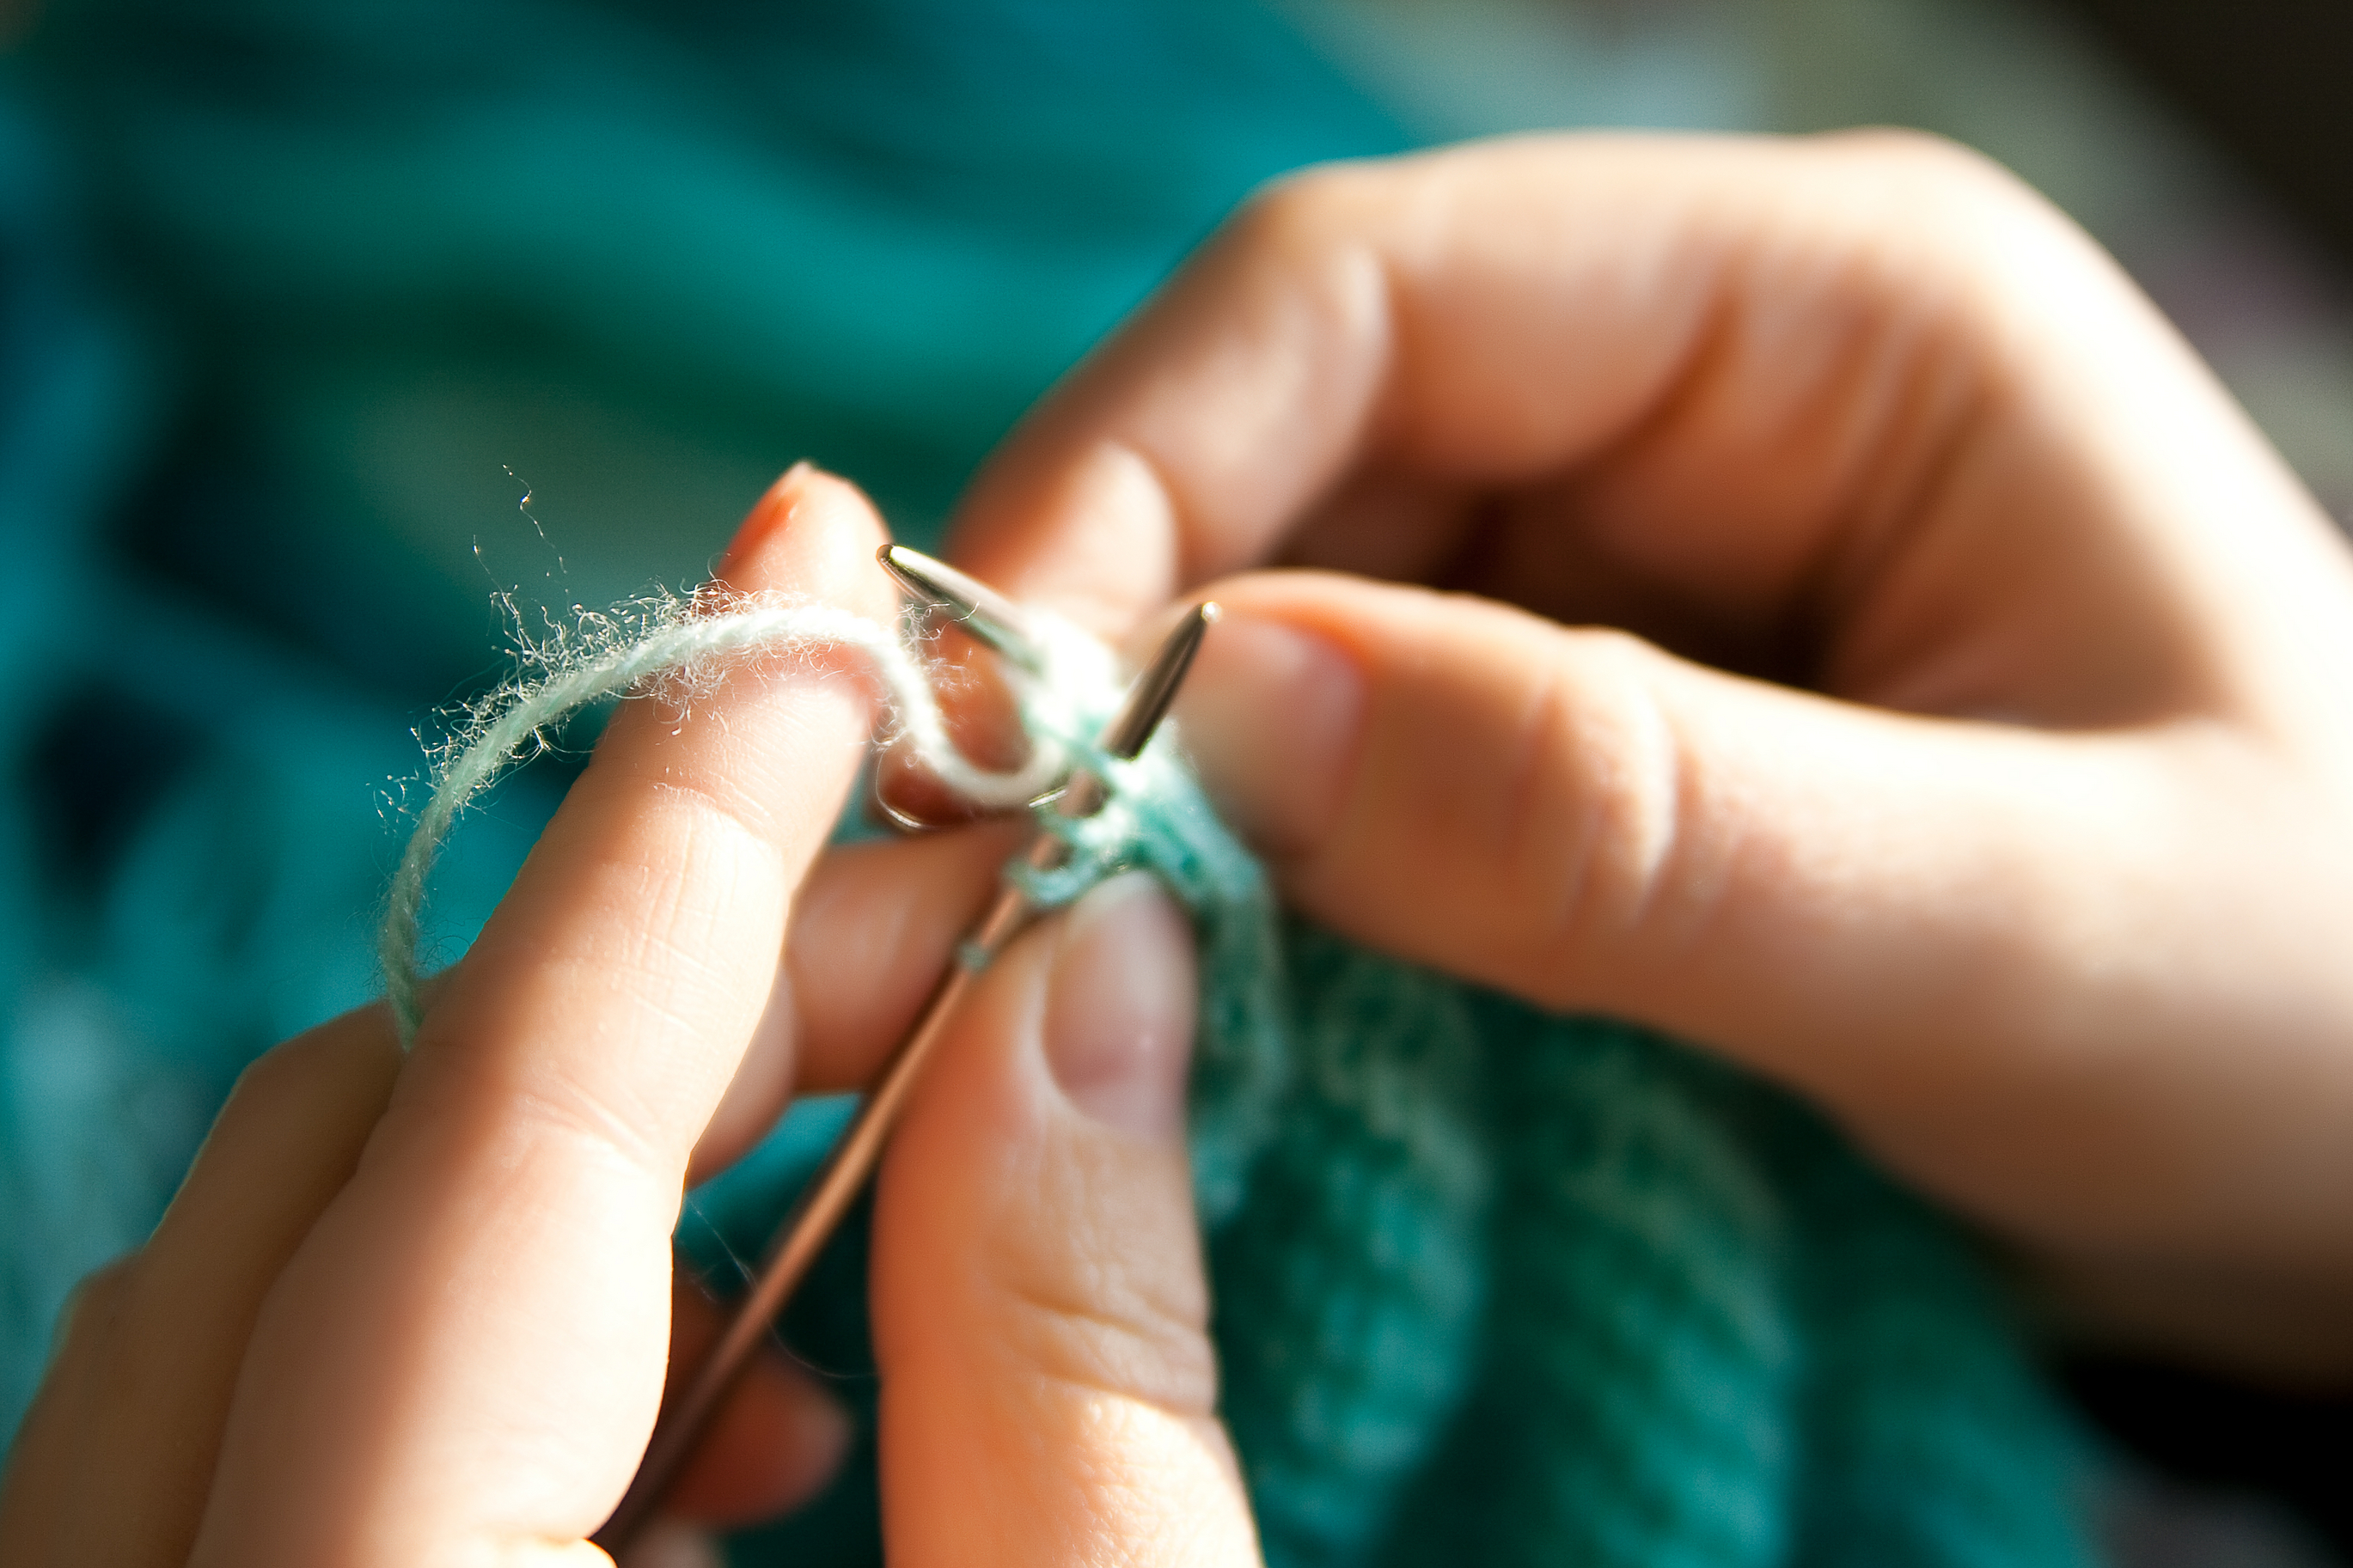 hands-knitting-art.jpg